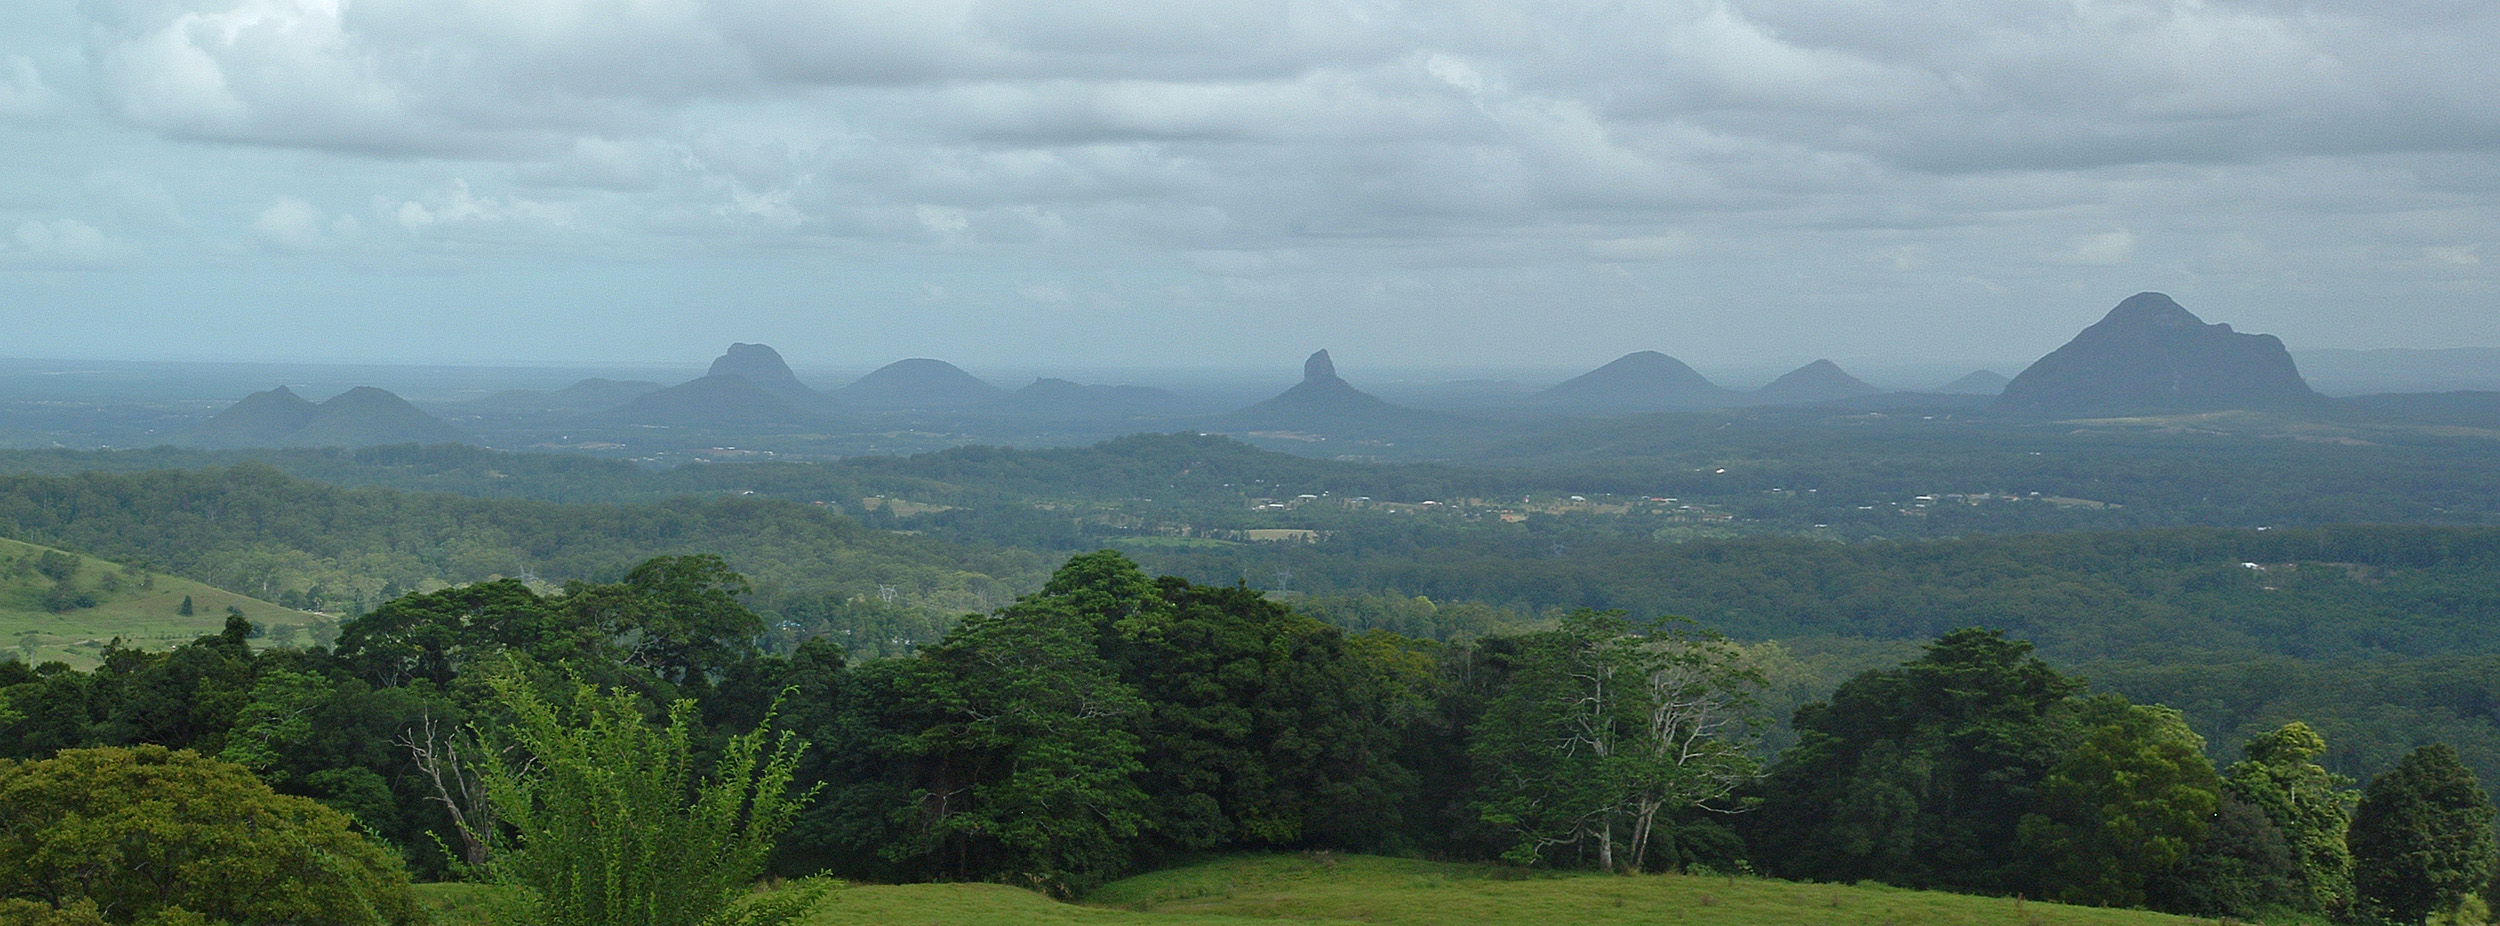 Glasshouse Mountains Backgrounds on Wallpapers Vista